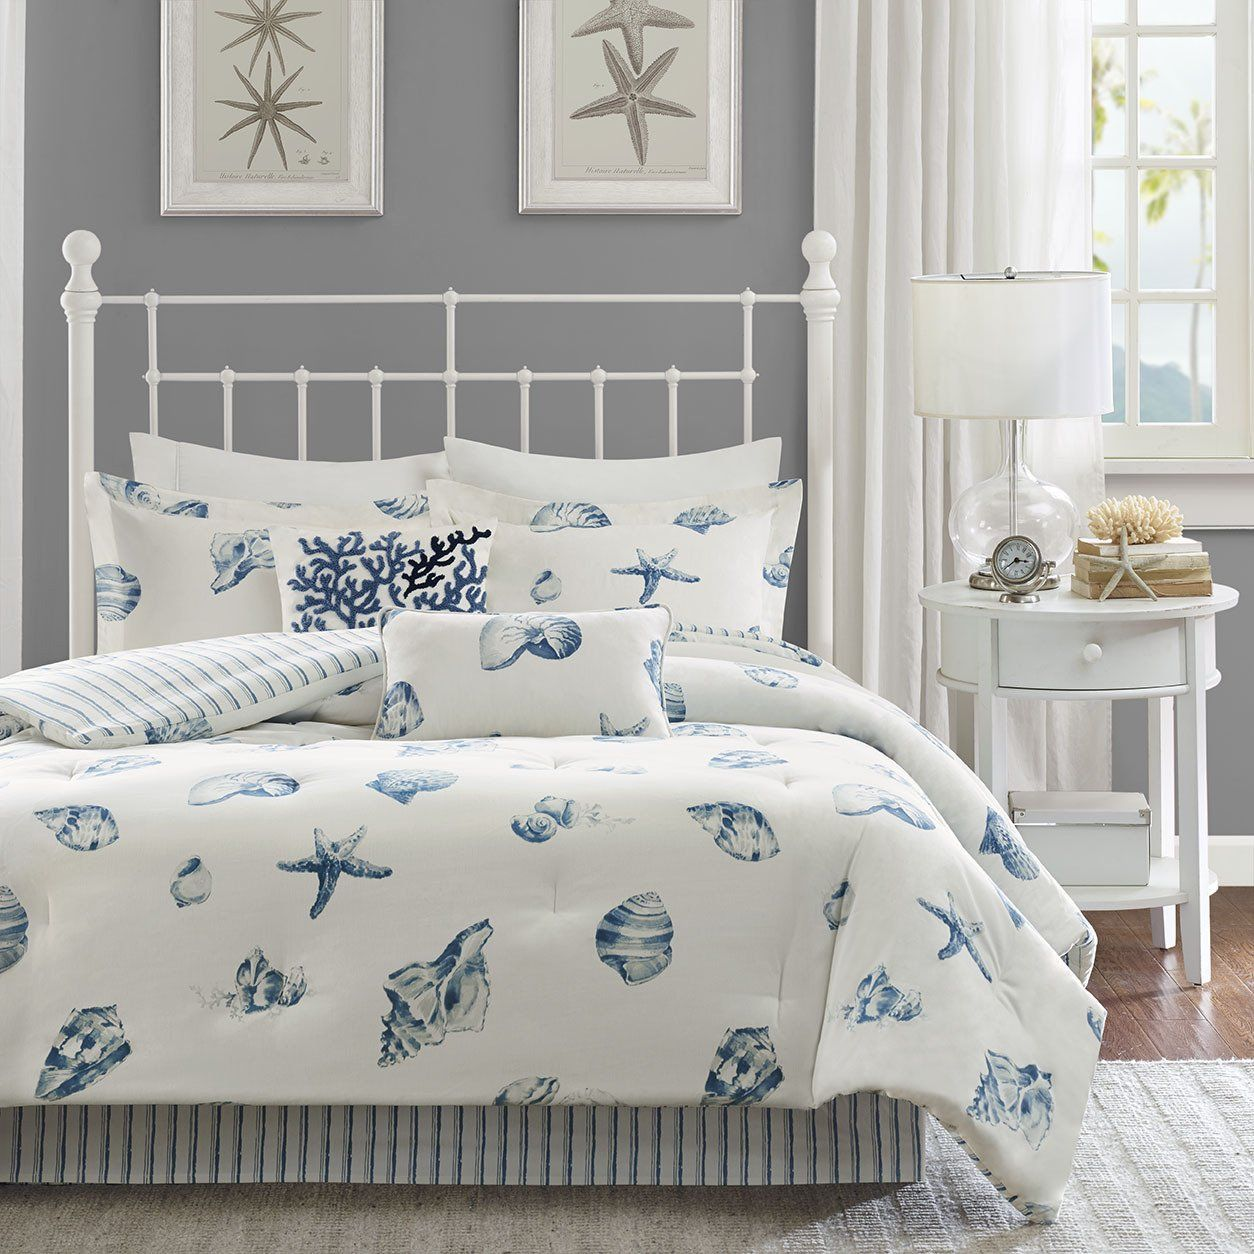 3 Piece Beach Seashell Design Comforter Set King Size Sea Shell Starfish Clam Print Motif Bedding Coastal Bedding Sets Comfortable Bedroom Beach Bedding Sets